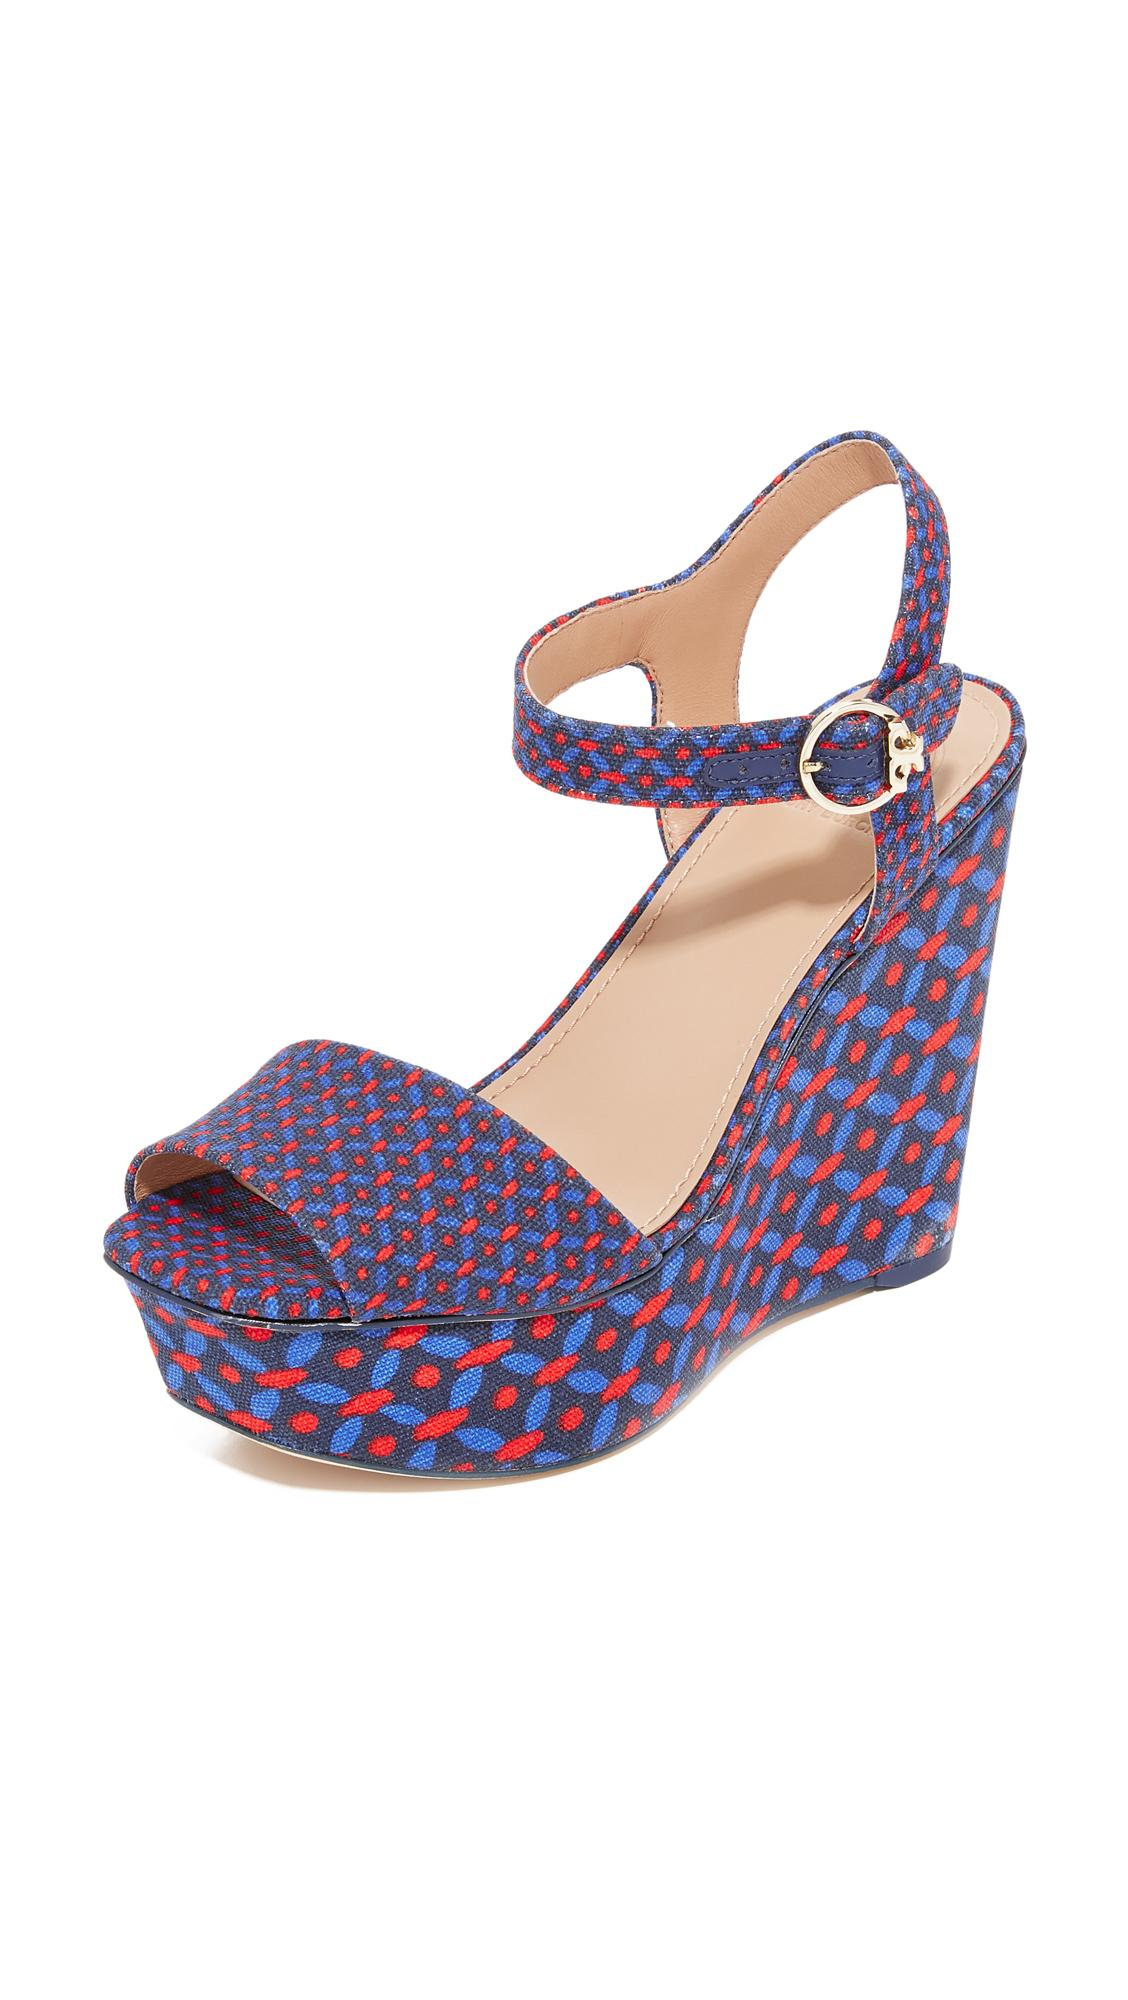 c2550a51c1ad4c Lyst - Tory Burch Haven Platform Sandals in Blue